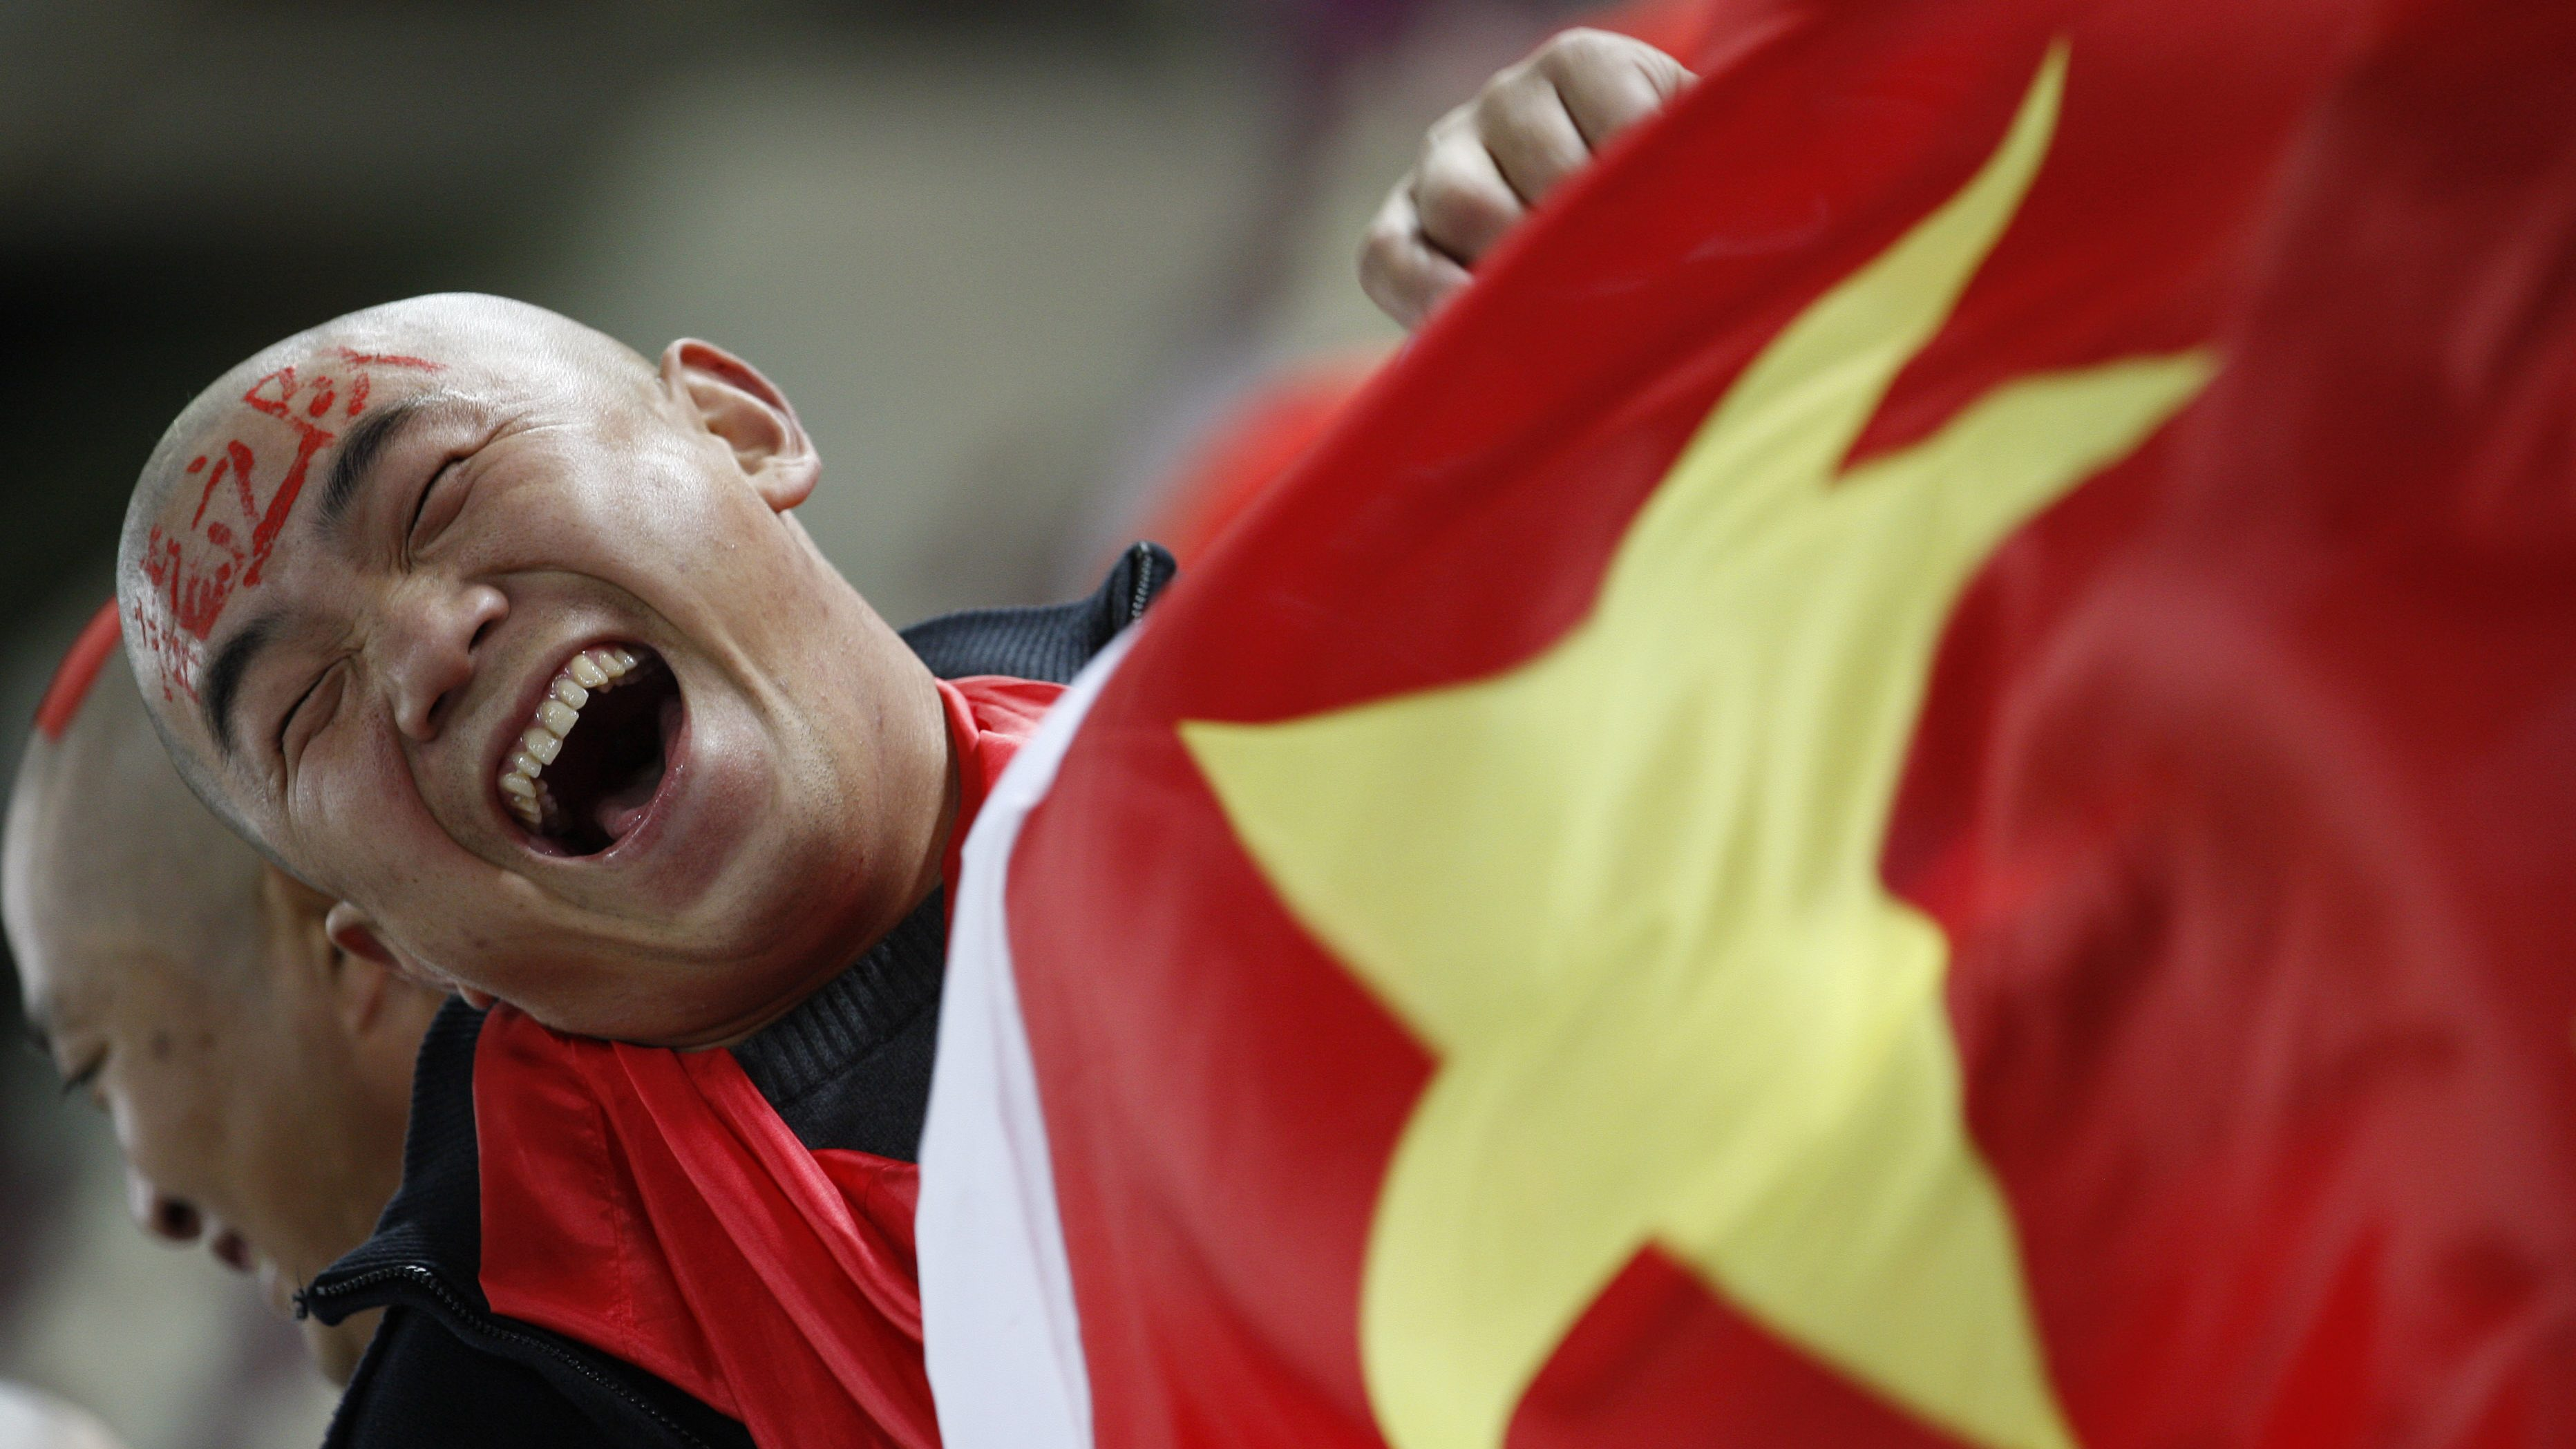 FILE - In this Wednesday, Jan. 12, 2011, file photo, a Chinese soccer fan cheers for his team before their AFC Asian Cup group A soccer match against Qatar in Doha, Qatar. Ever since the Chinese Football Association announced it had coaxed Lippi out of retirement, the nation's long-suffering fans have responded with more than a hint of skepticism. Given the team's record of failure under a string of foreign and Chinese coaches, the problems are more often attributed to the lack of a strong youth program and a misplaced, money-driven focus on the domestic league.